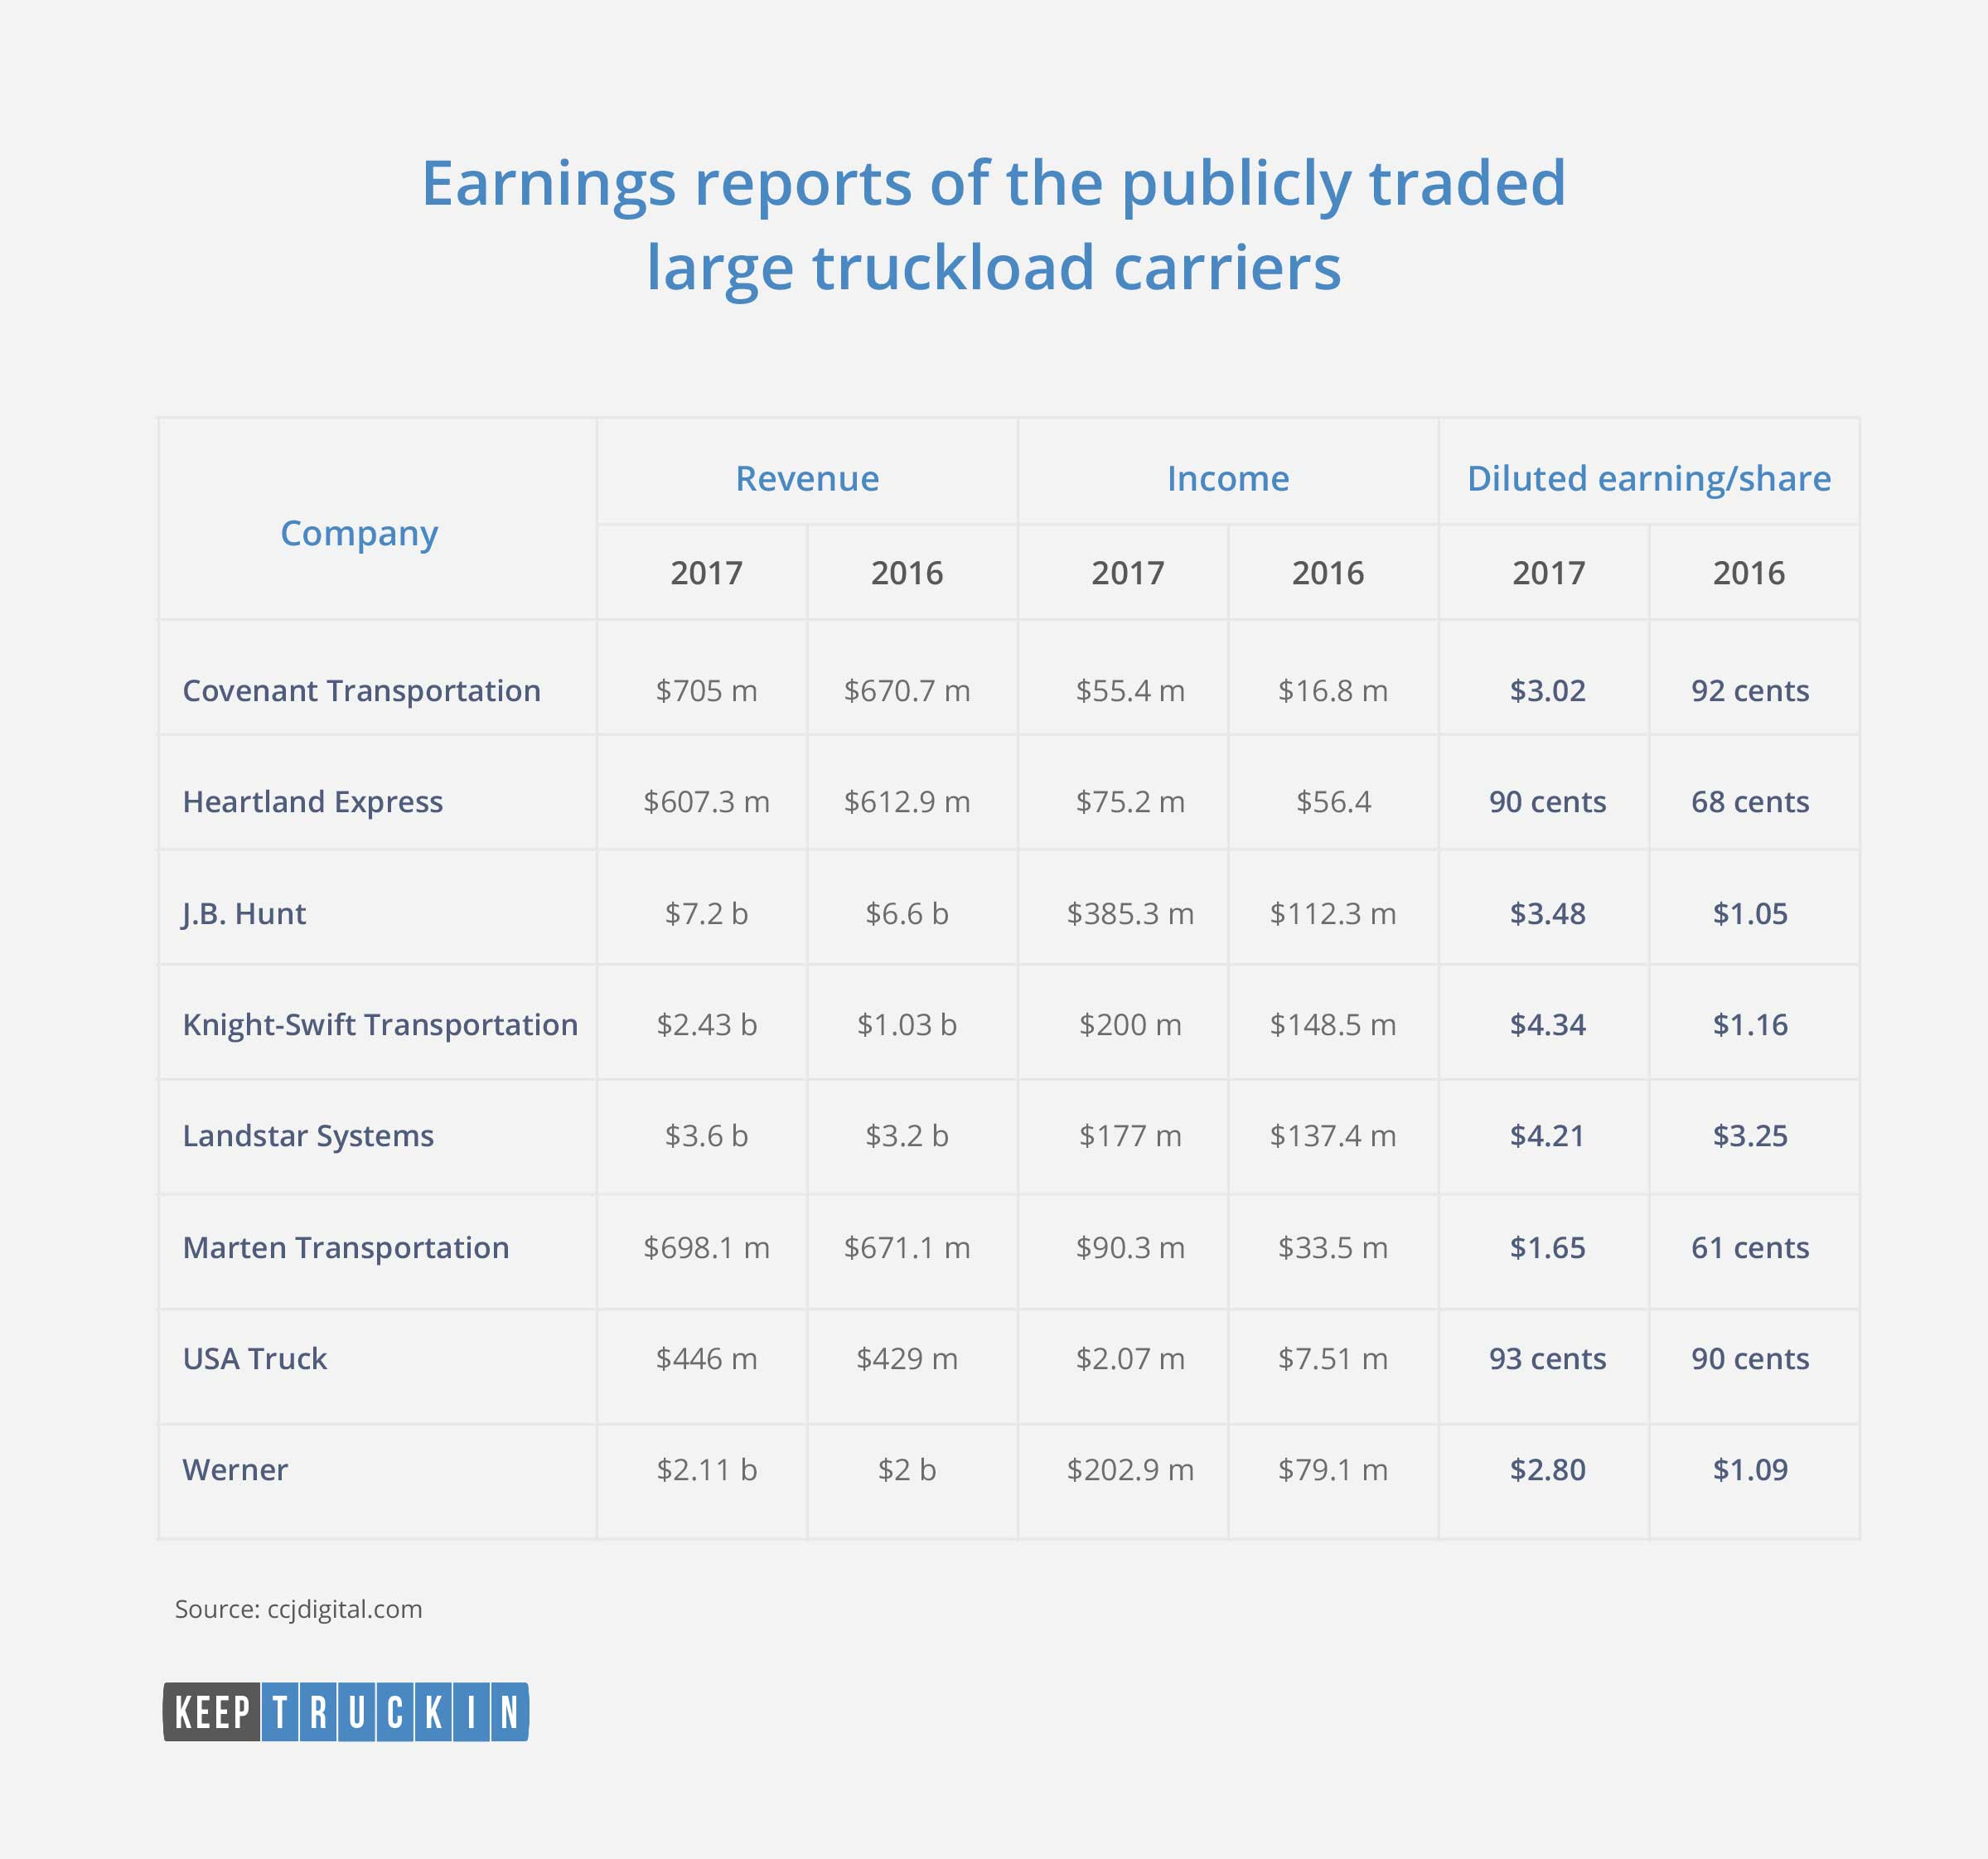 Earnings reported by carriers